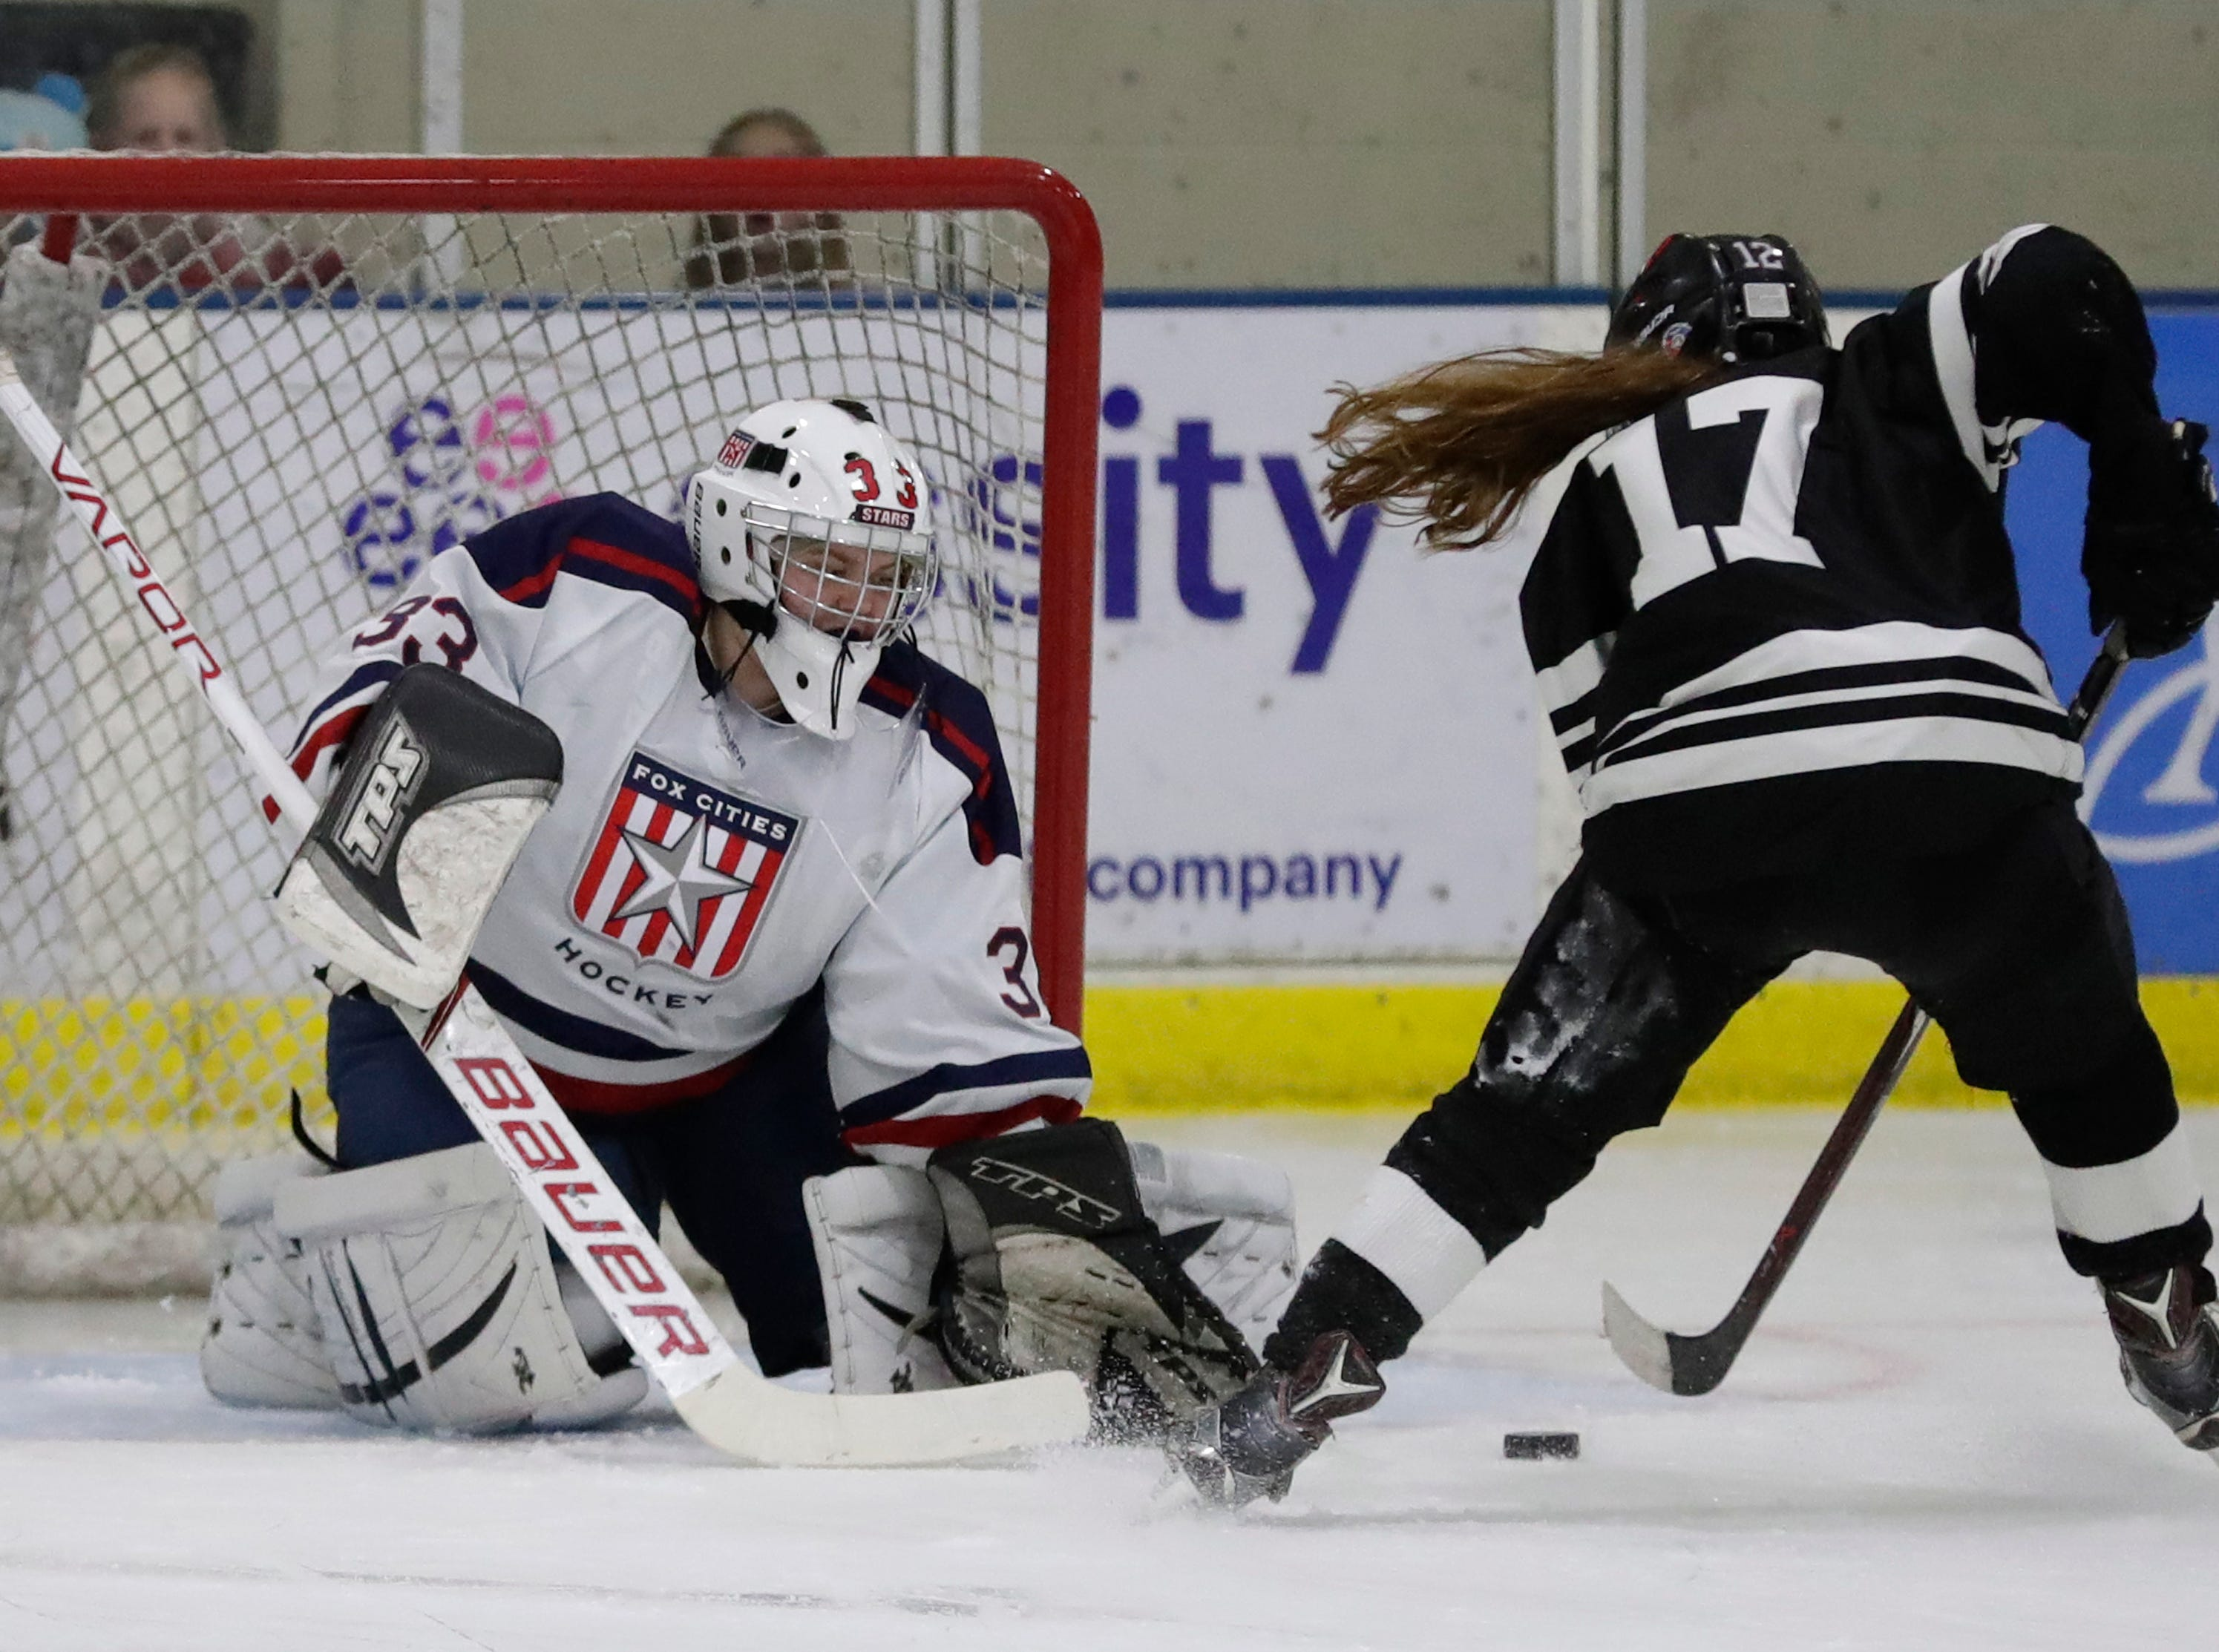 The Warbirds' Hattie Verstegen (17) scores on a penalty shot against Fox Cities Stars' Hattie Berndt (33) during their girls hockey game Thursday, January 10, 2019, at Tri-County Ice Arena in Fox Crossing, Wis. 